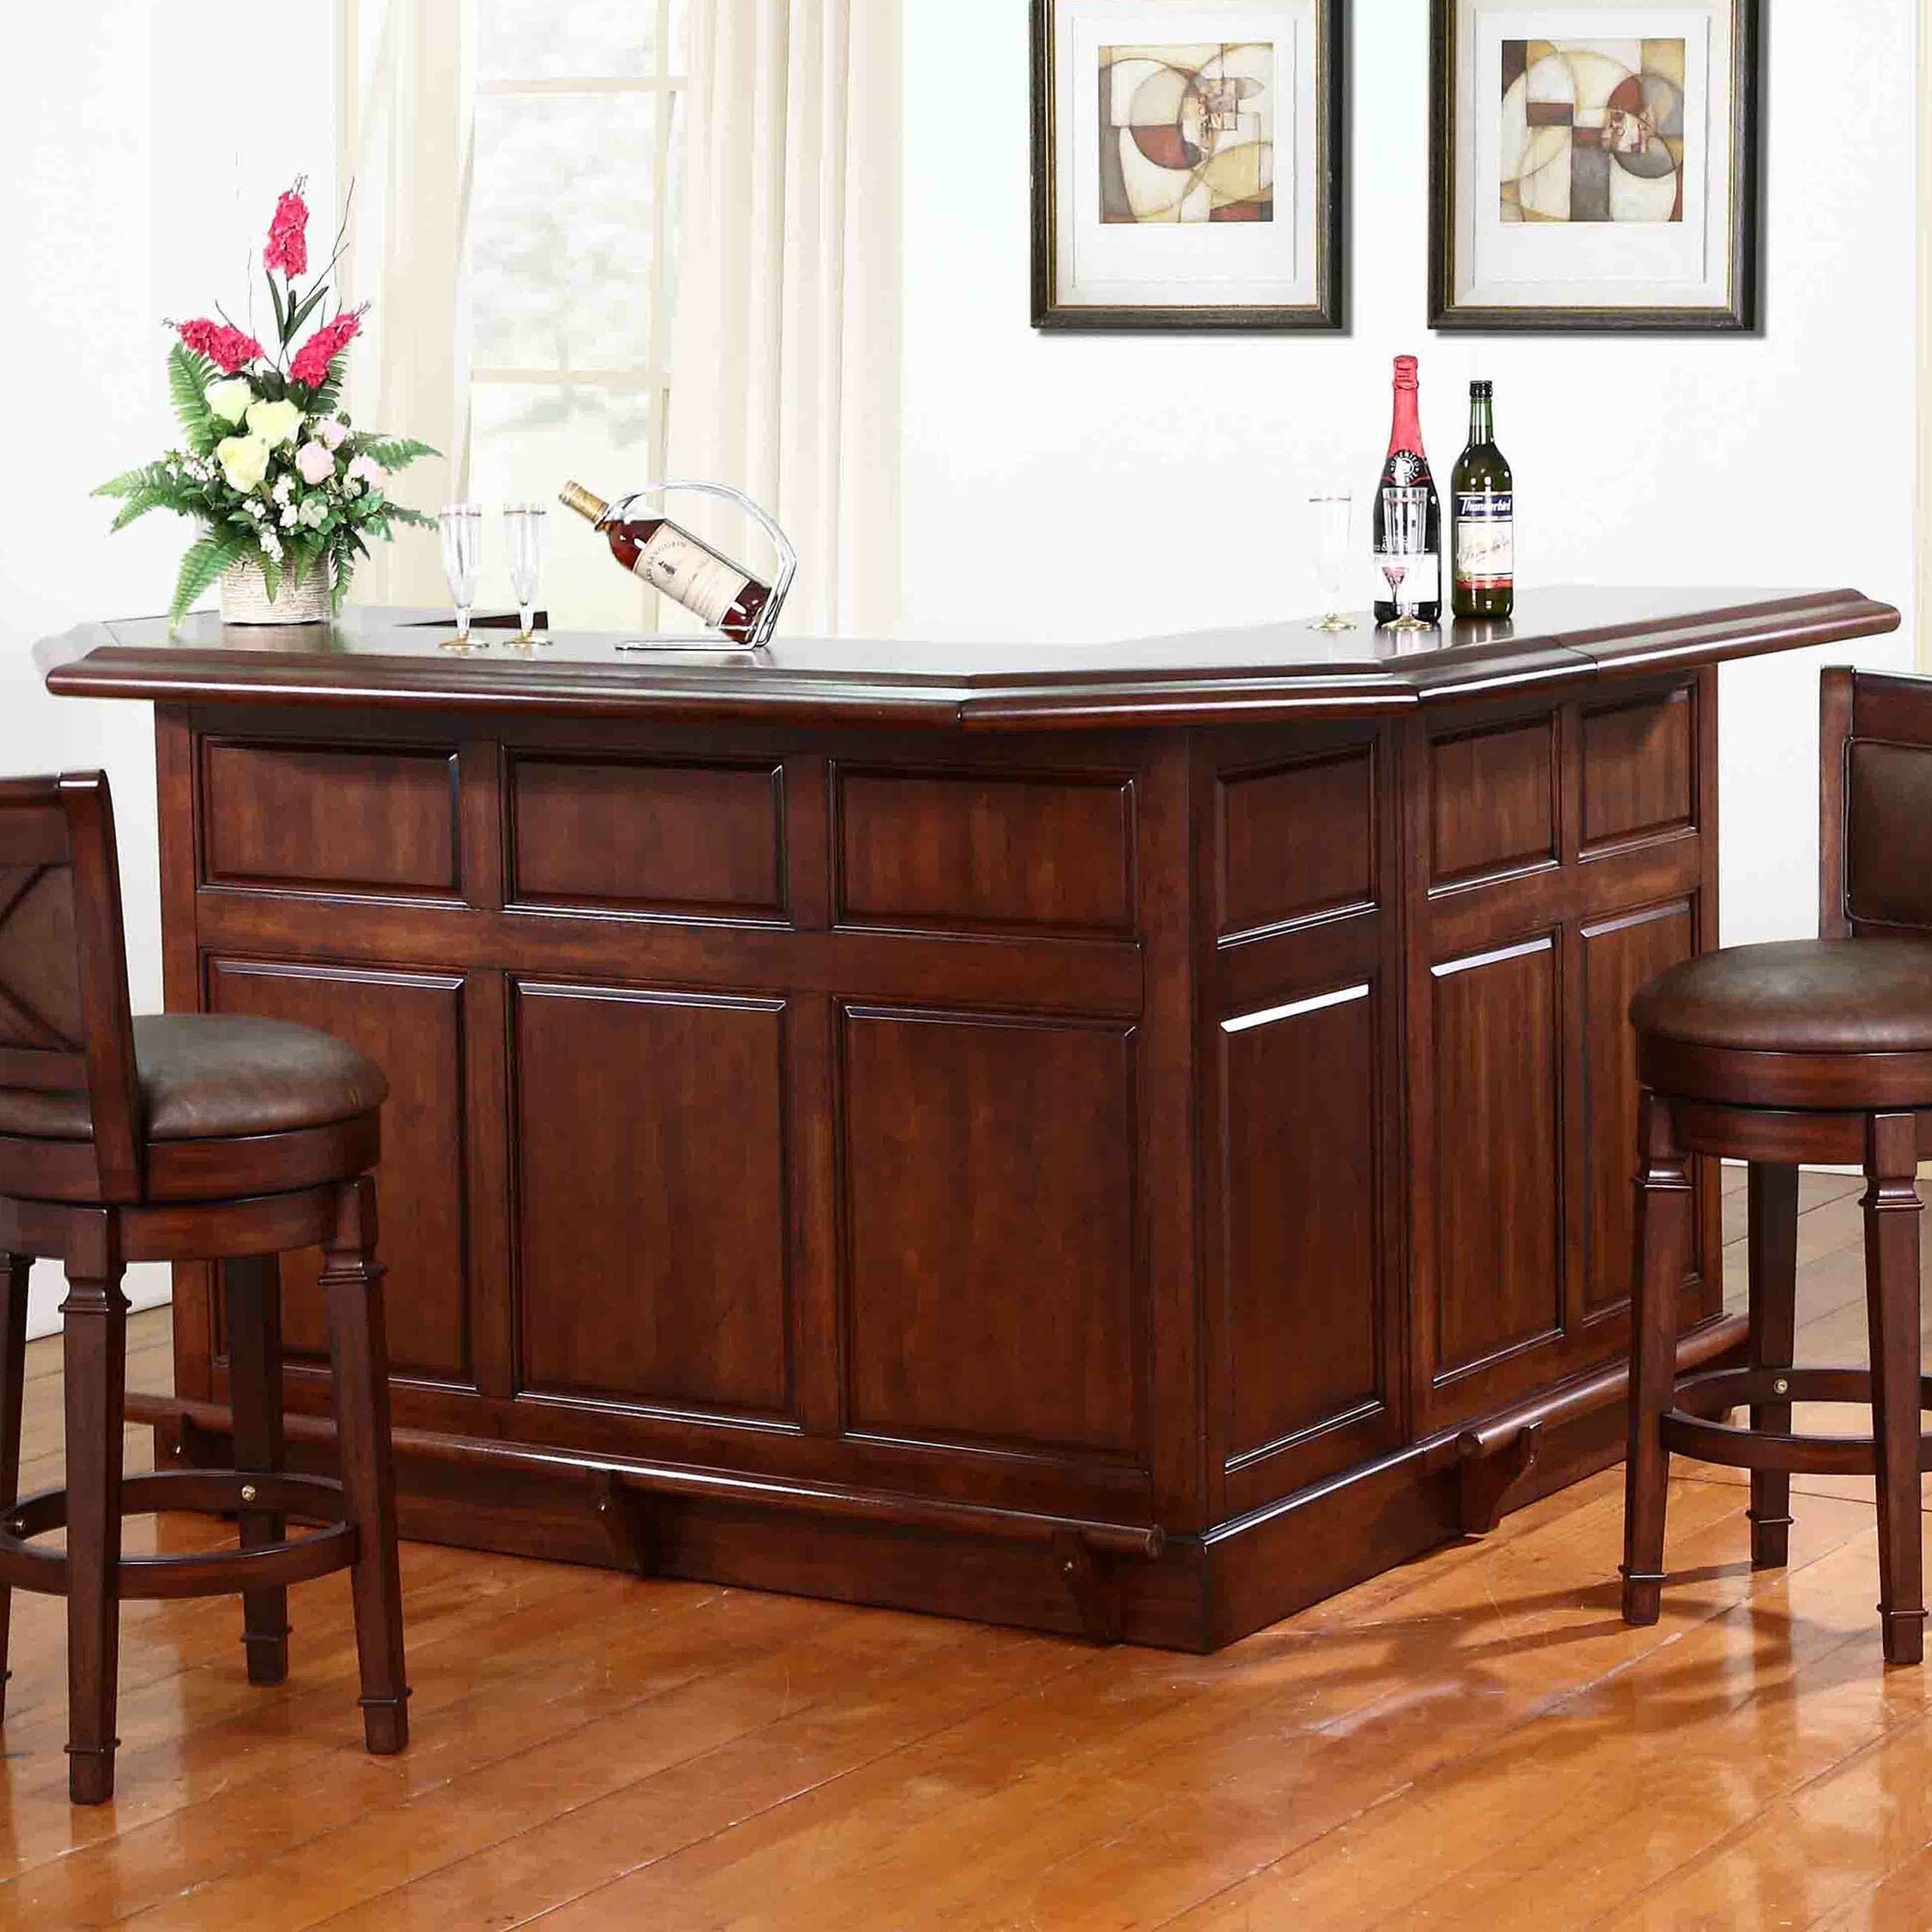 Eci furniture belvedere home bar ebay for Home furniture